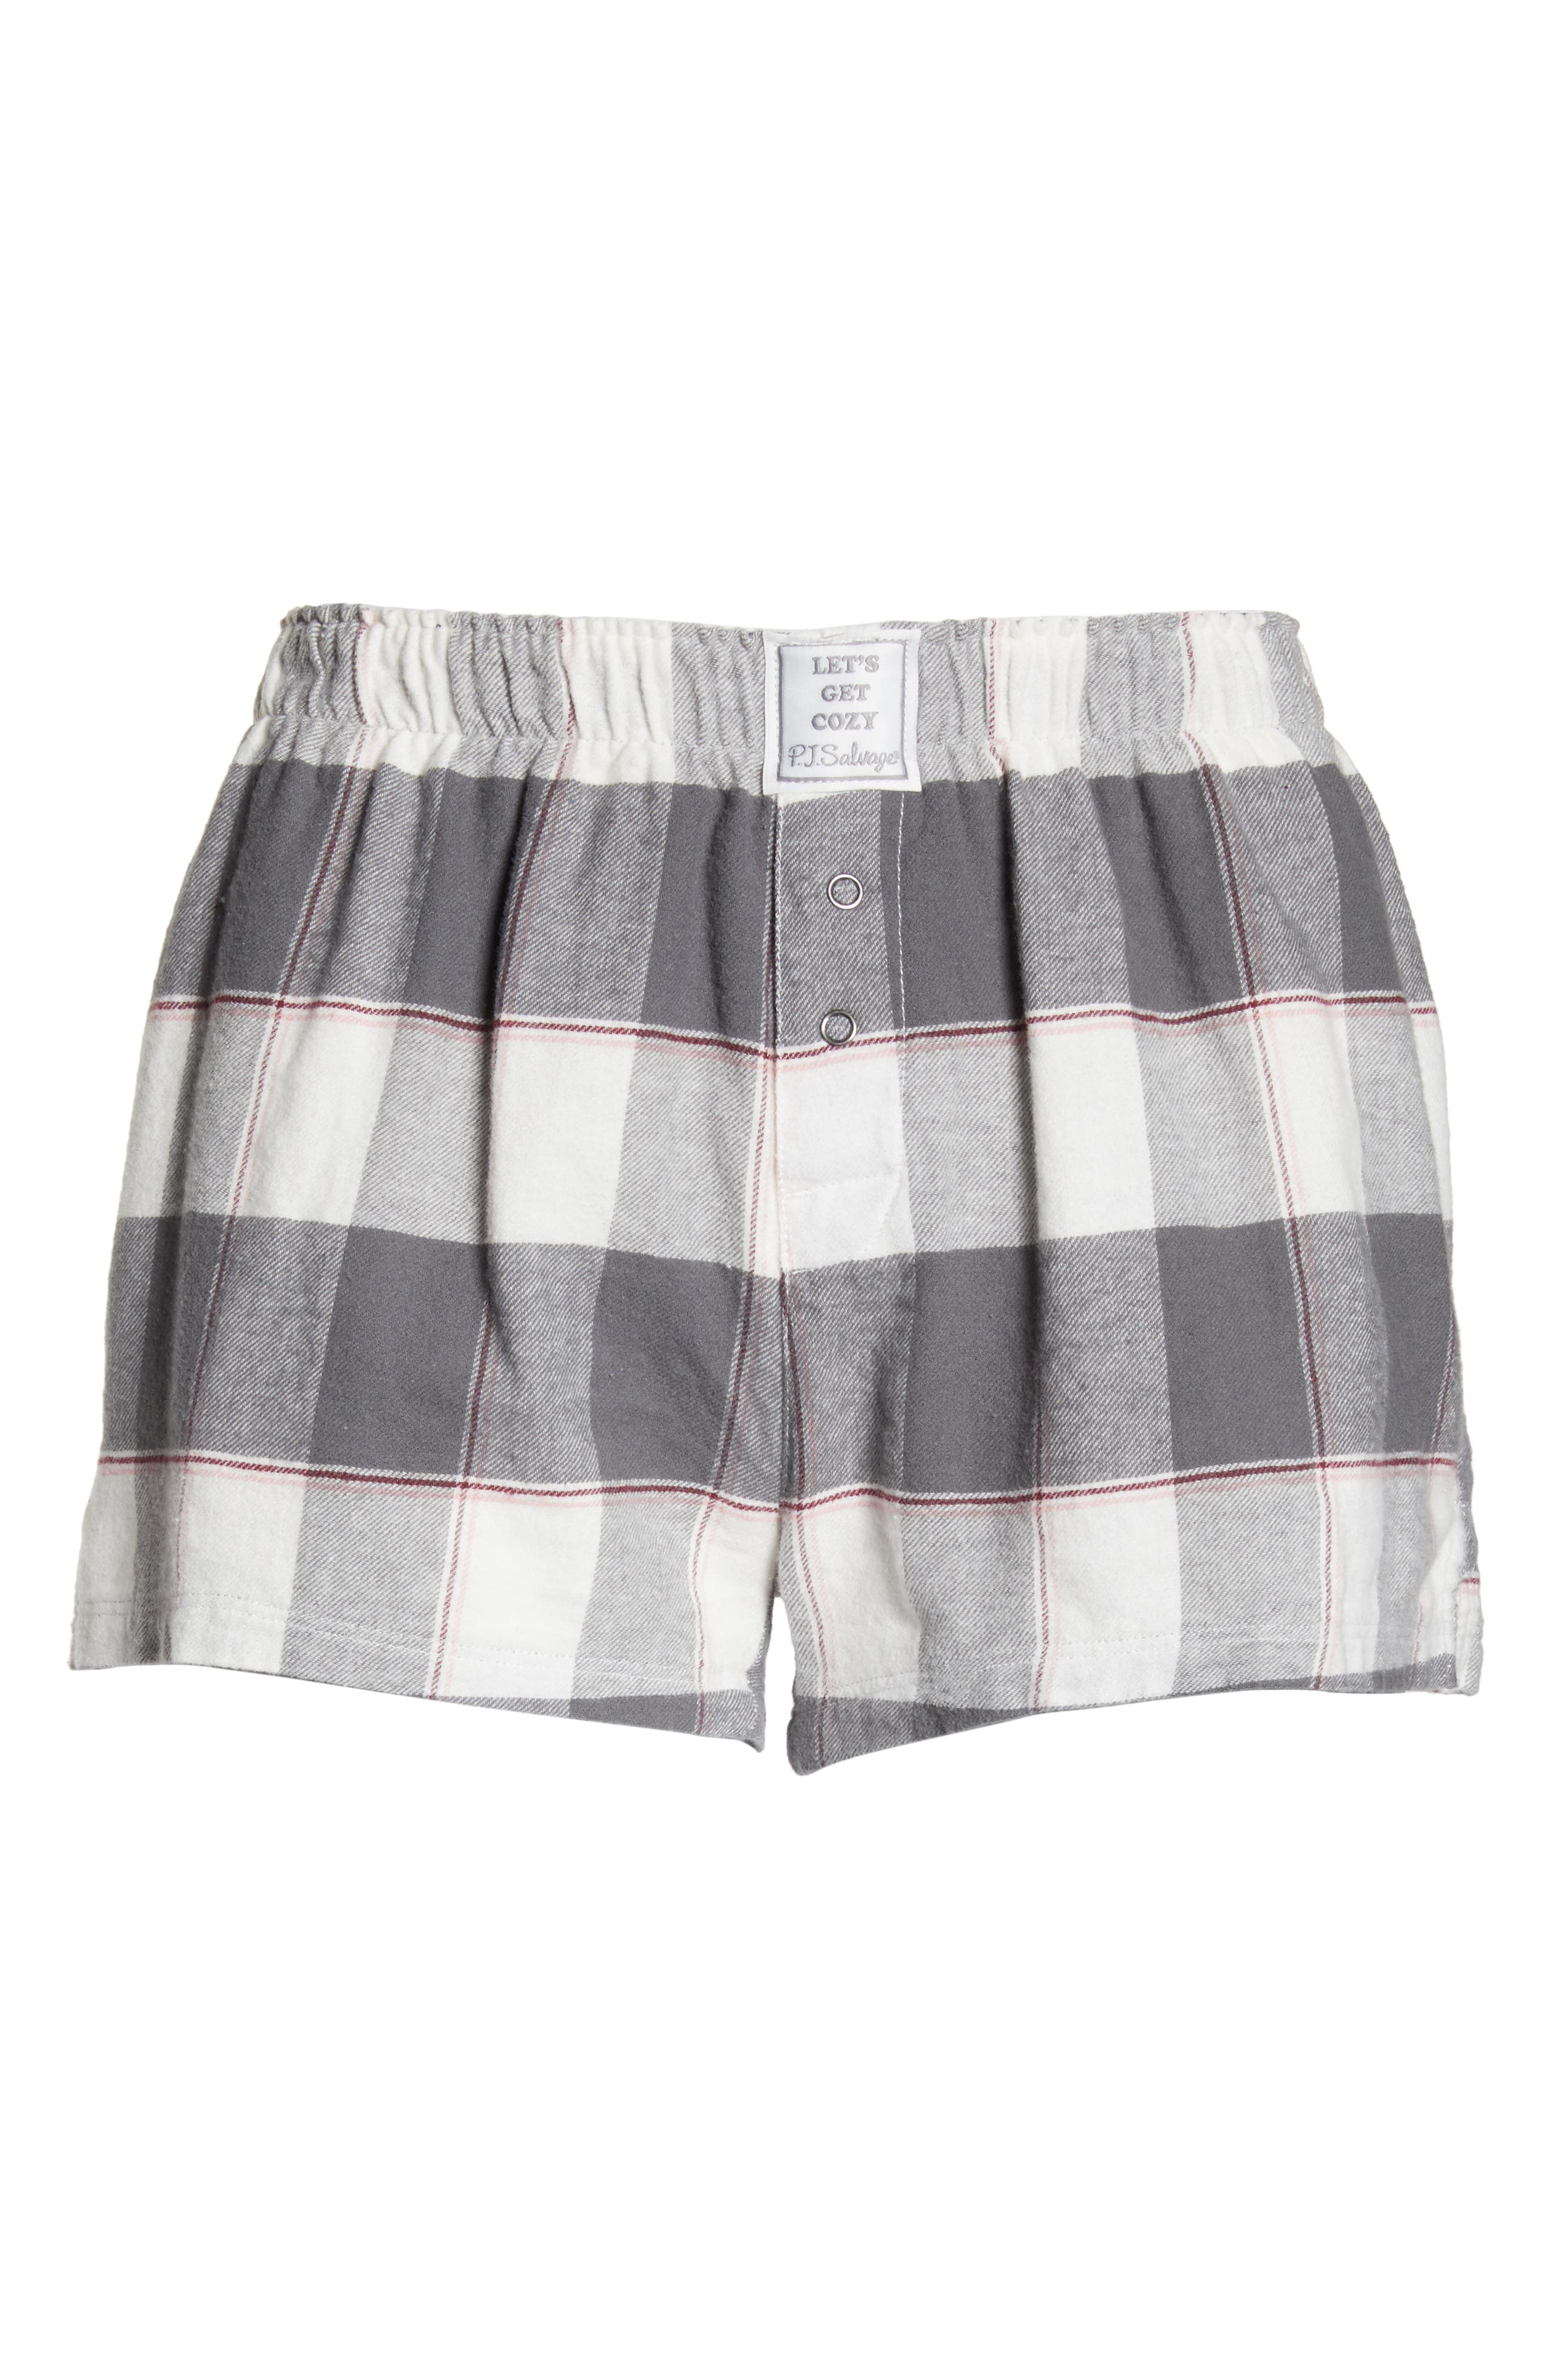 PJ SALVAGE,                             Cozy Time Shorts,                             Alternate thumbnail 6, color,                             028